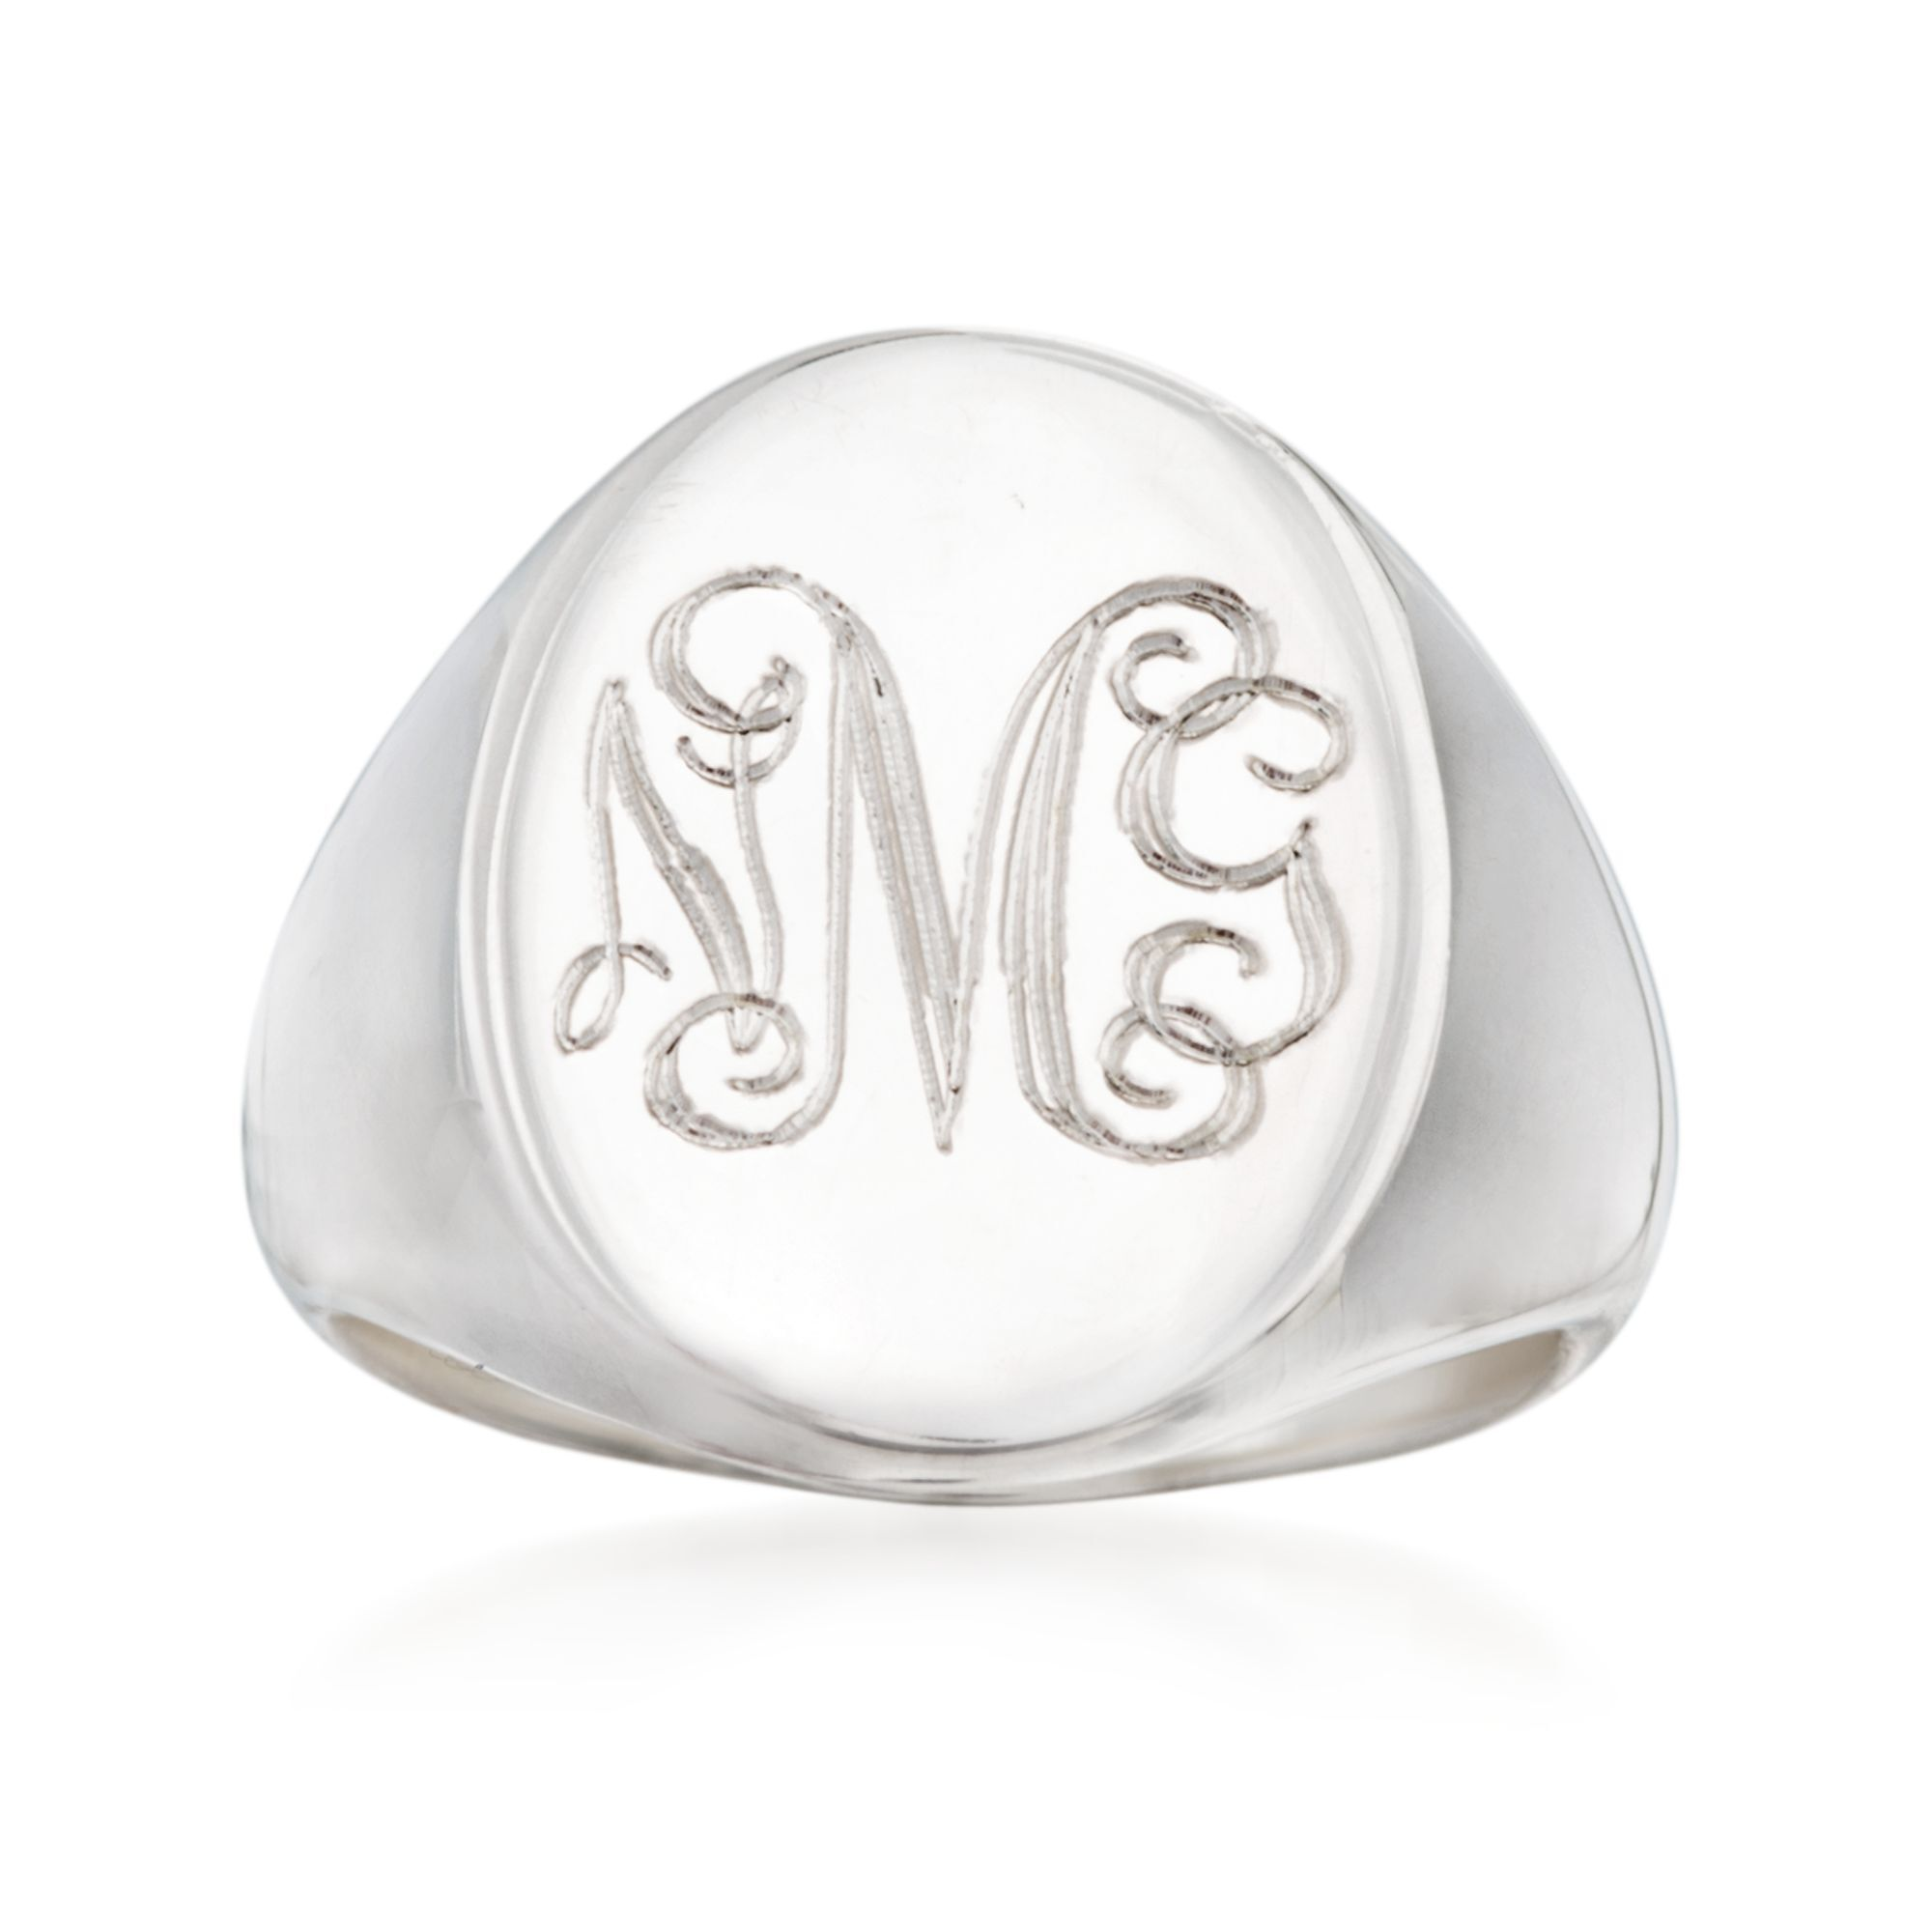 Customisable Your Message Engraved Free So Chic Jewels Mens Stainless Steel Clear Cubic Zirconia Oval Signet Ring